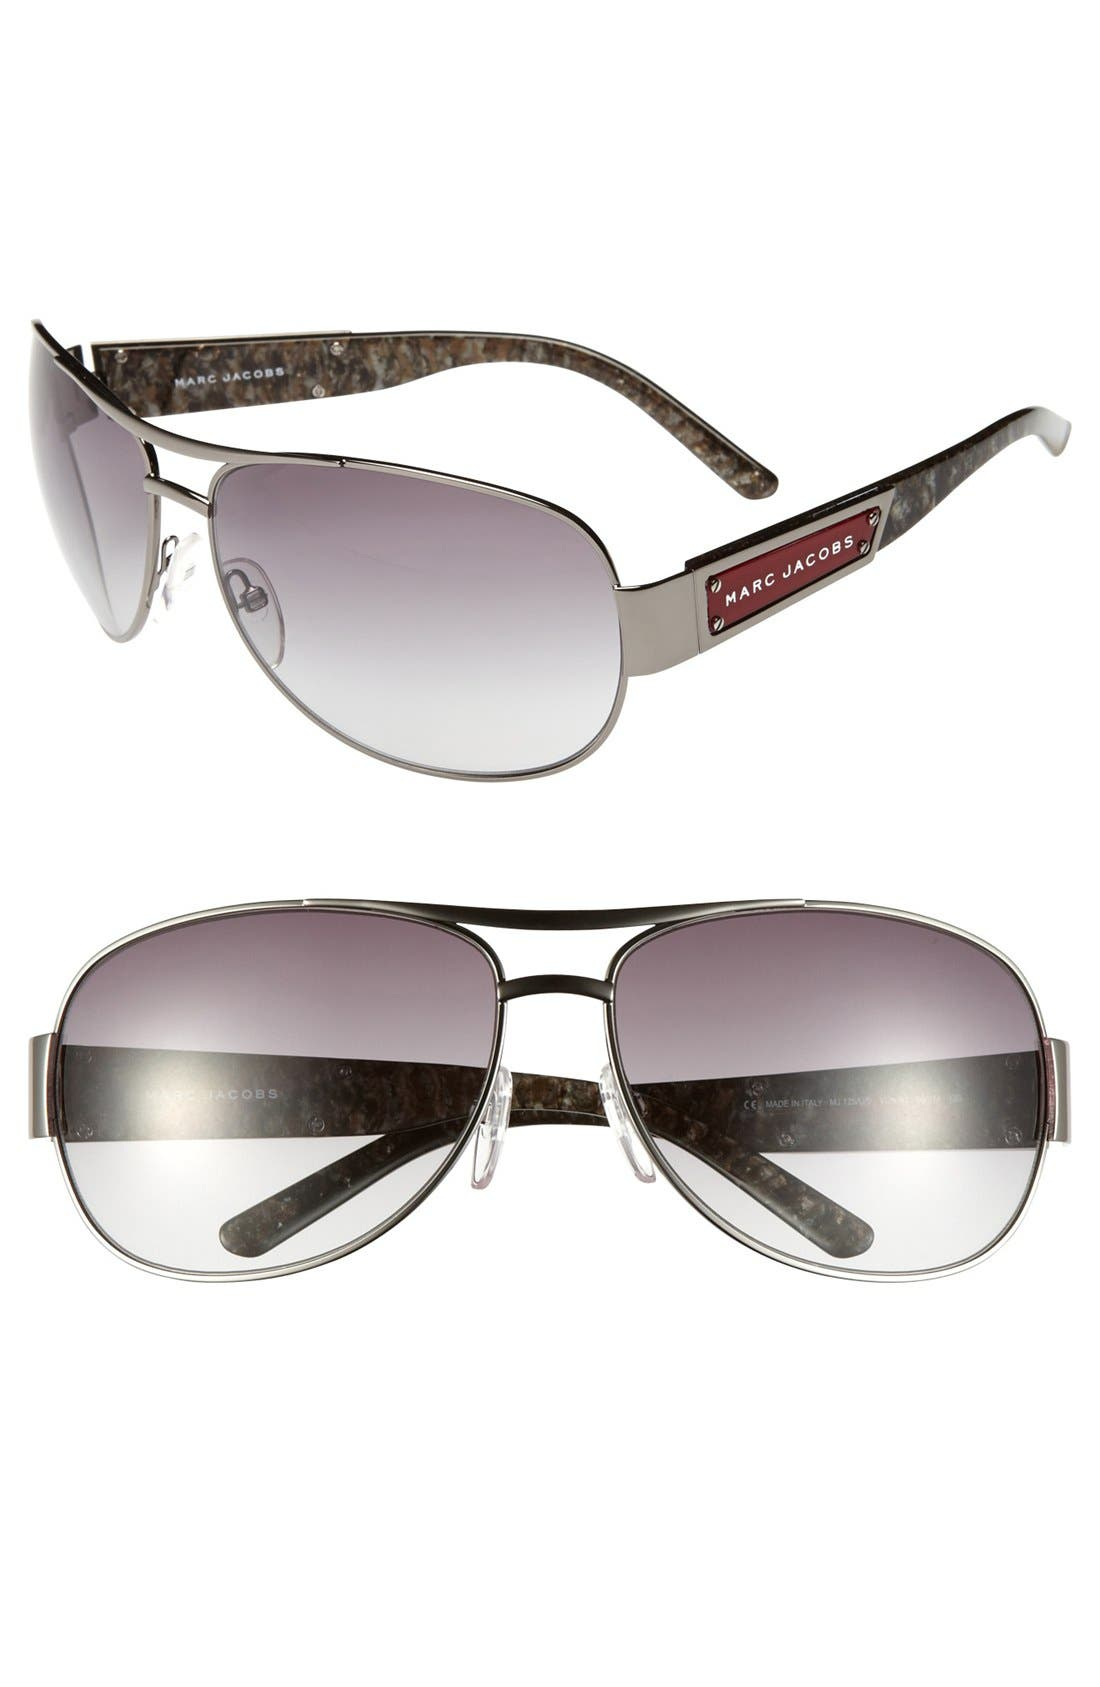 Alternate Image 1 Selected - MARC JACOBS Metal 65mm Aviator Sunglasses